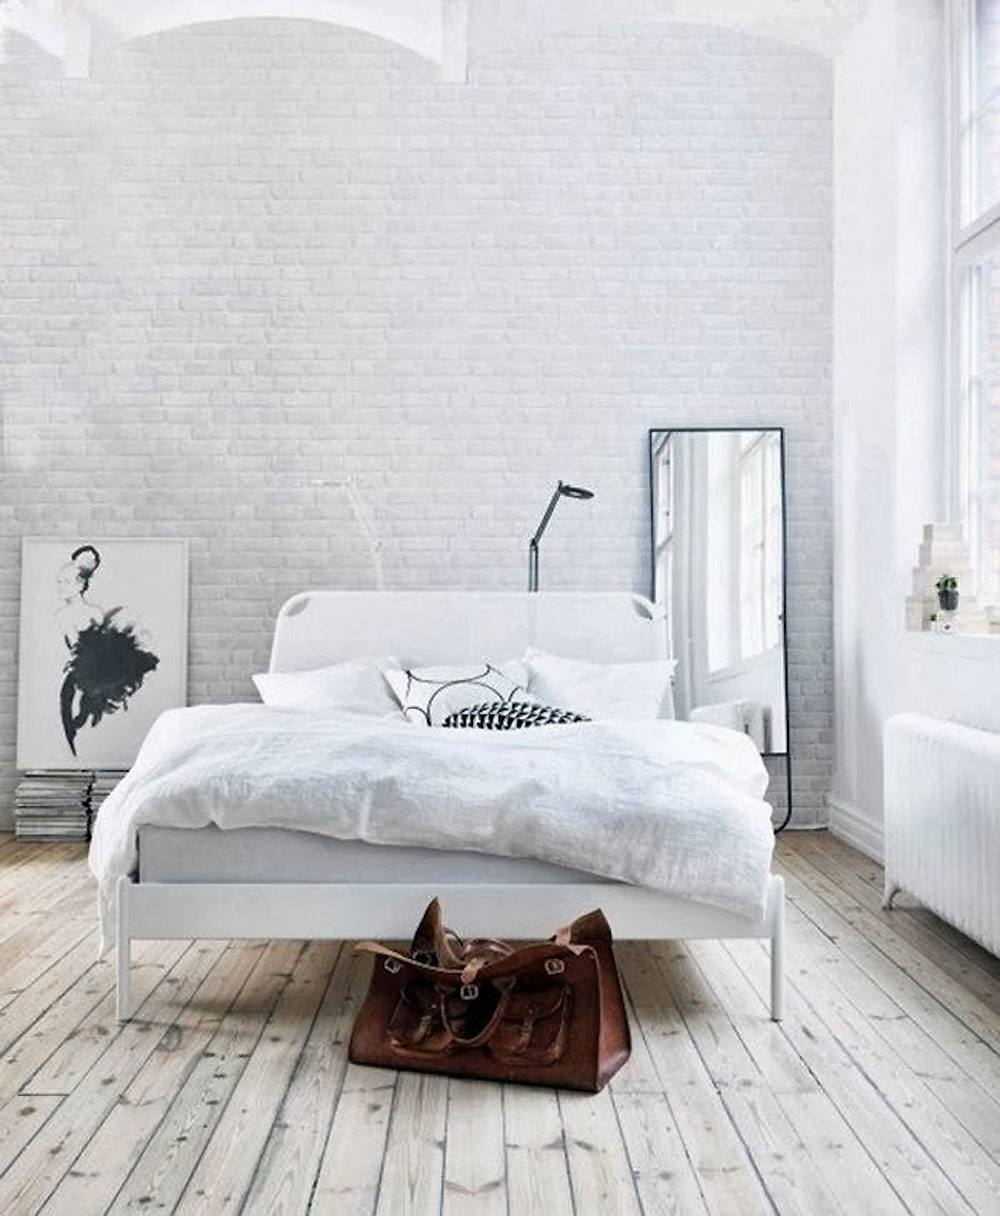 40 minimalist bedroom ideas less is more homelovr for Minimalist style bedroom